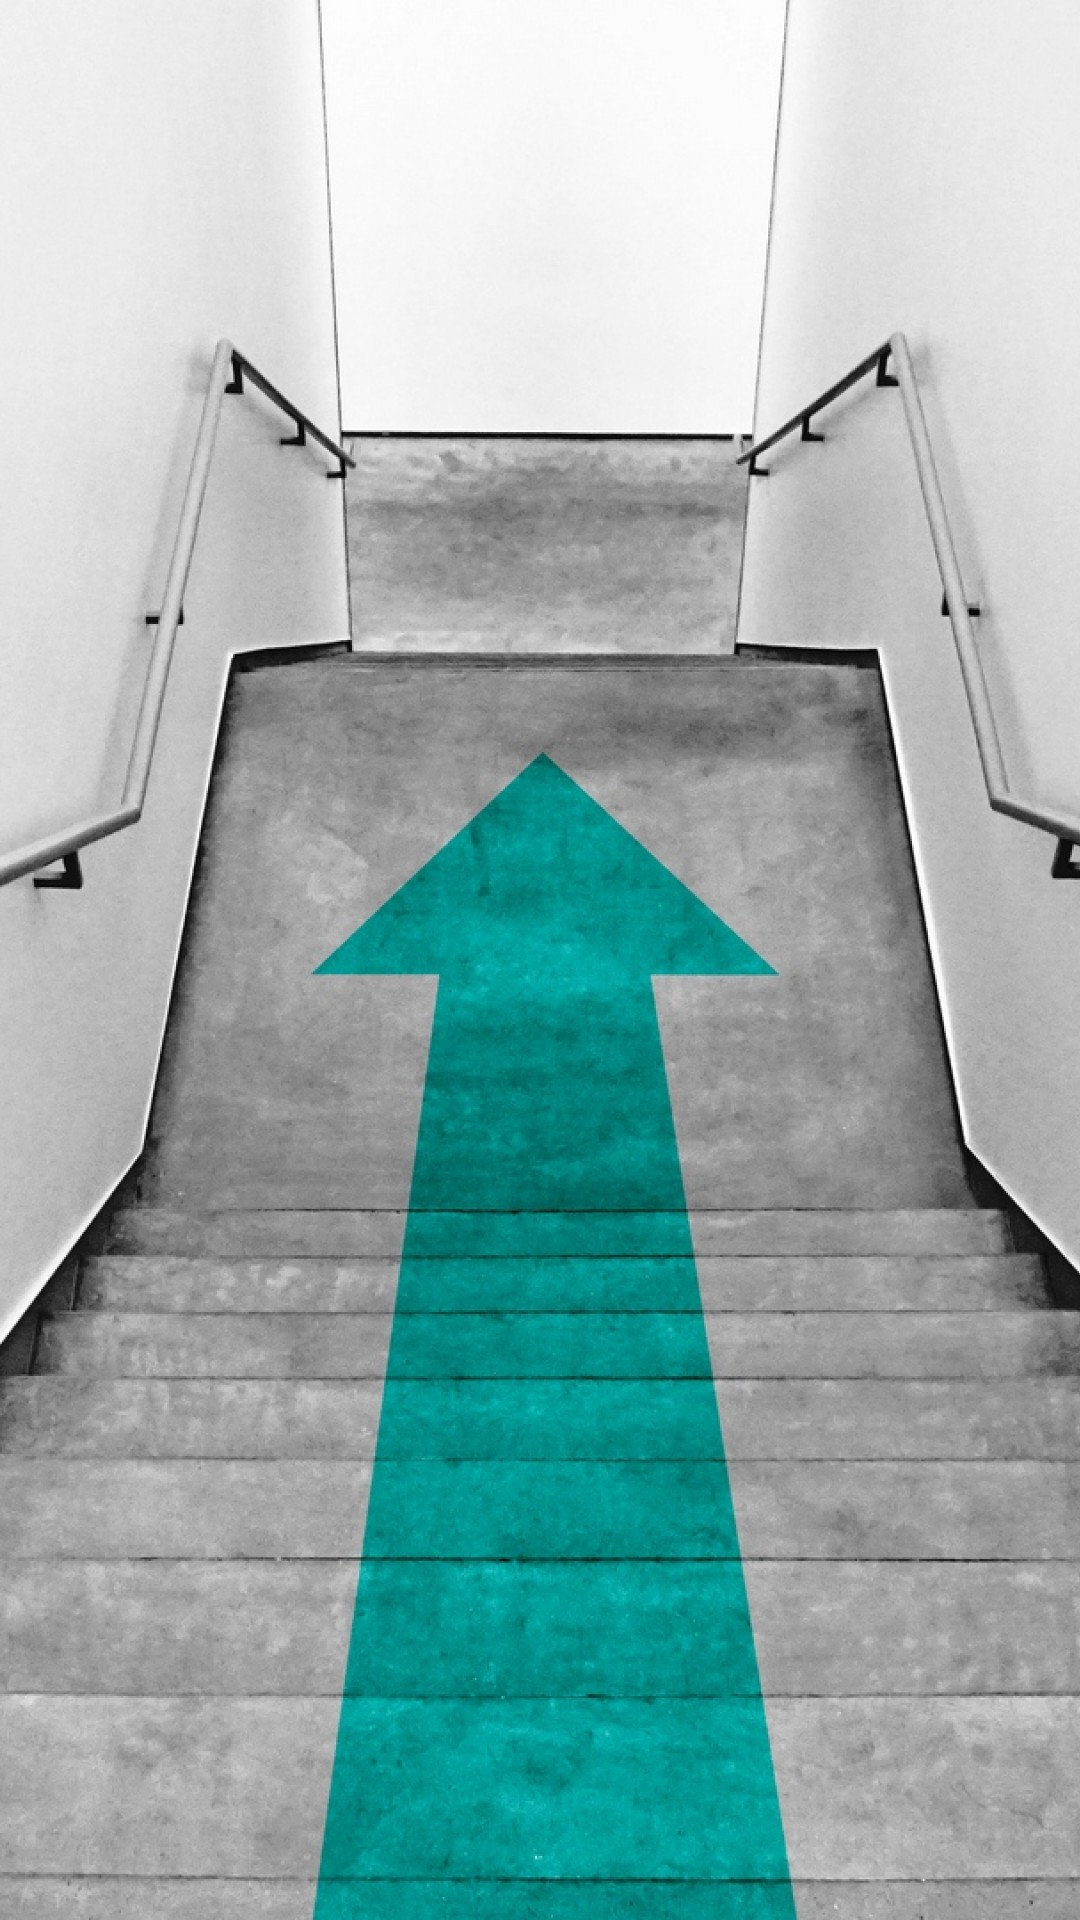 Green Arrow At Staircase Hd Wallpaper Iphone 6 6s Plus